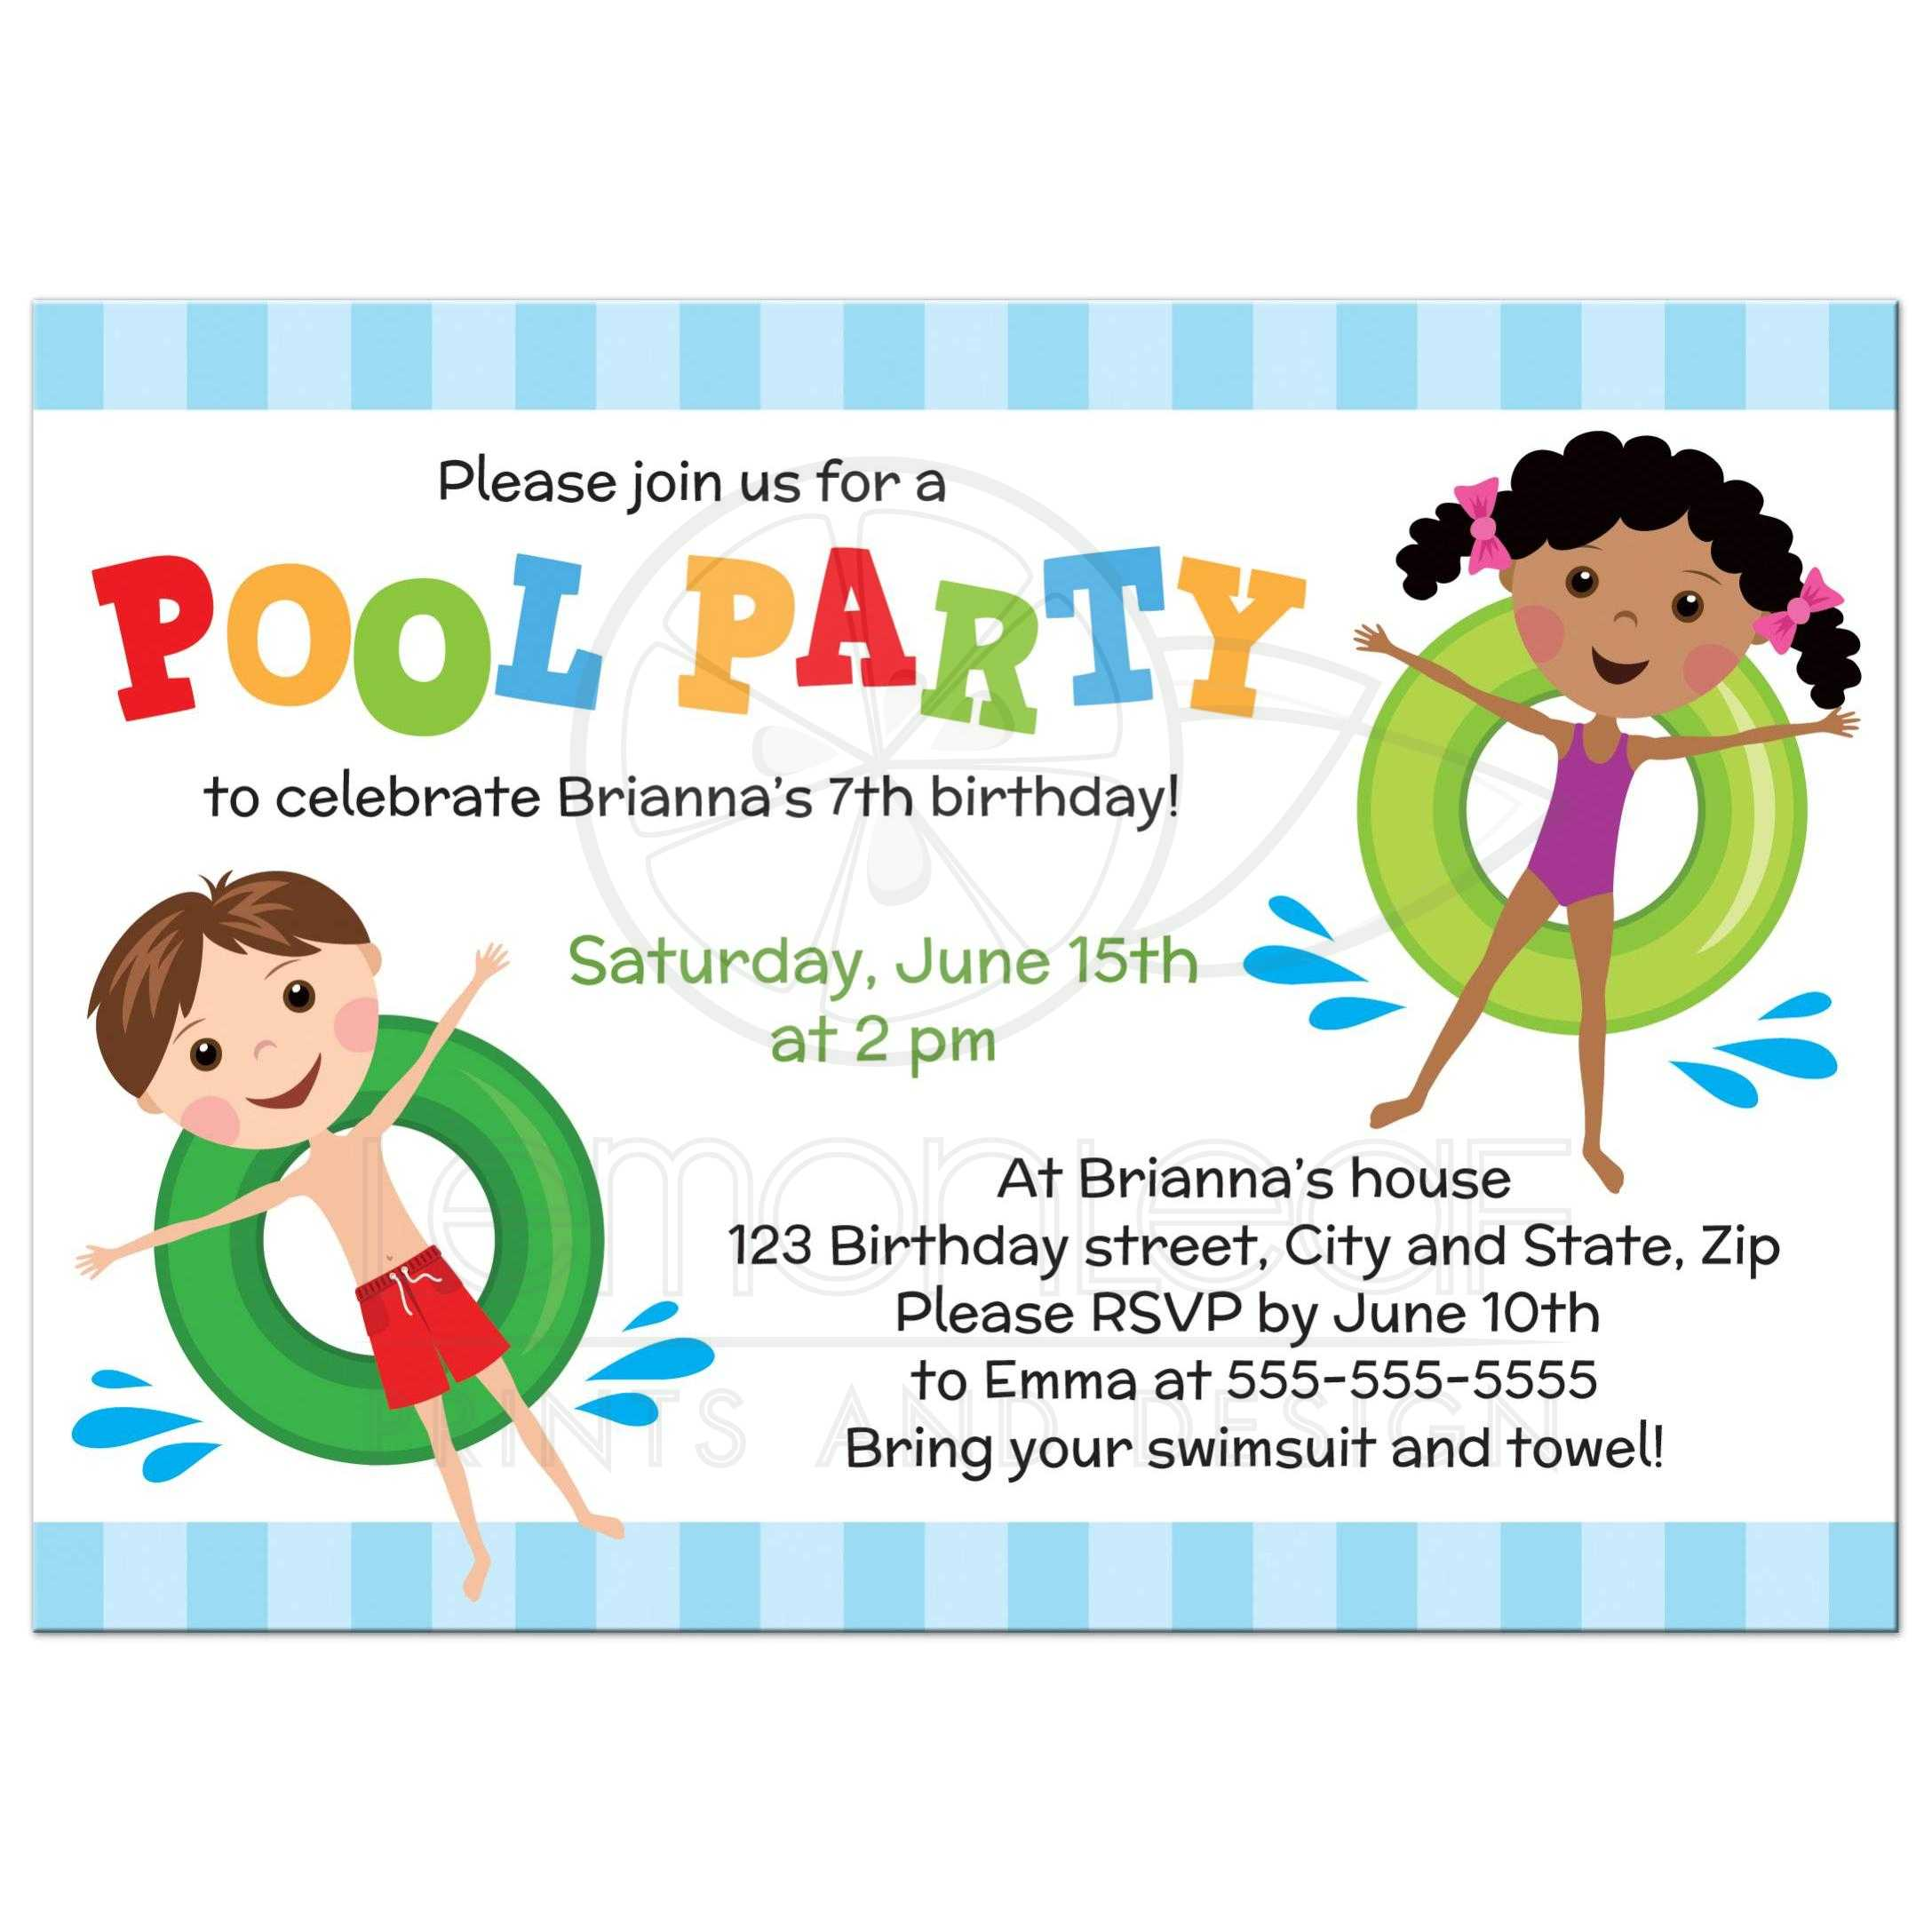 Pool birthday party invitation for kids, boy and girl on inflatables